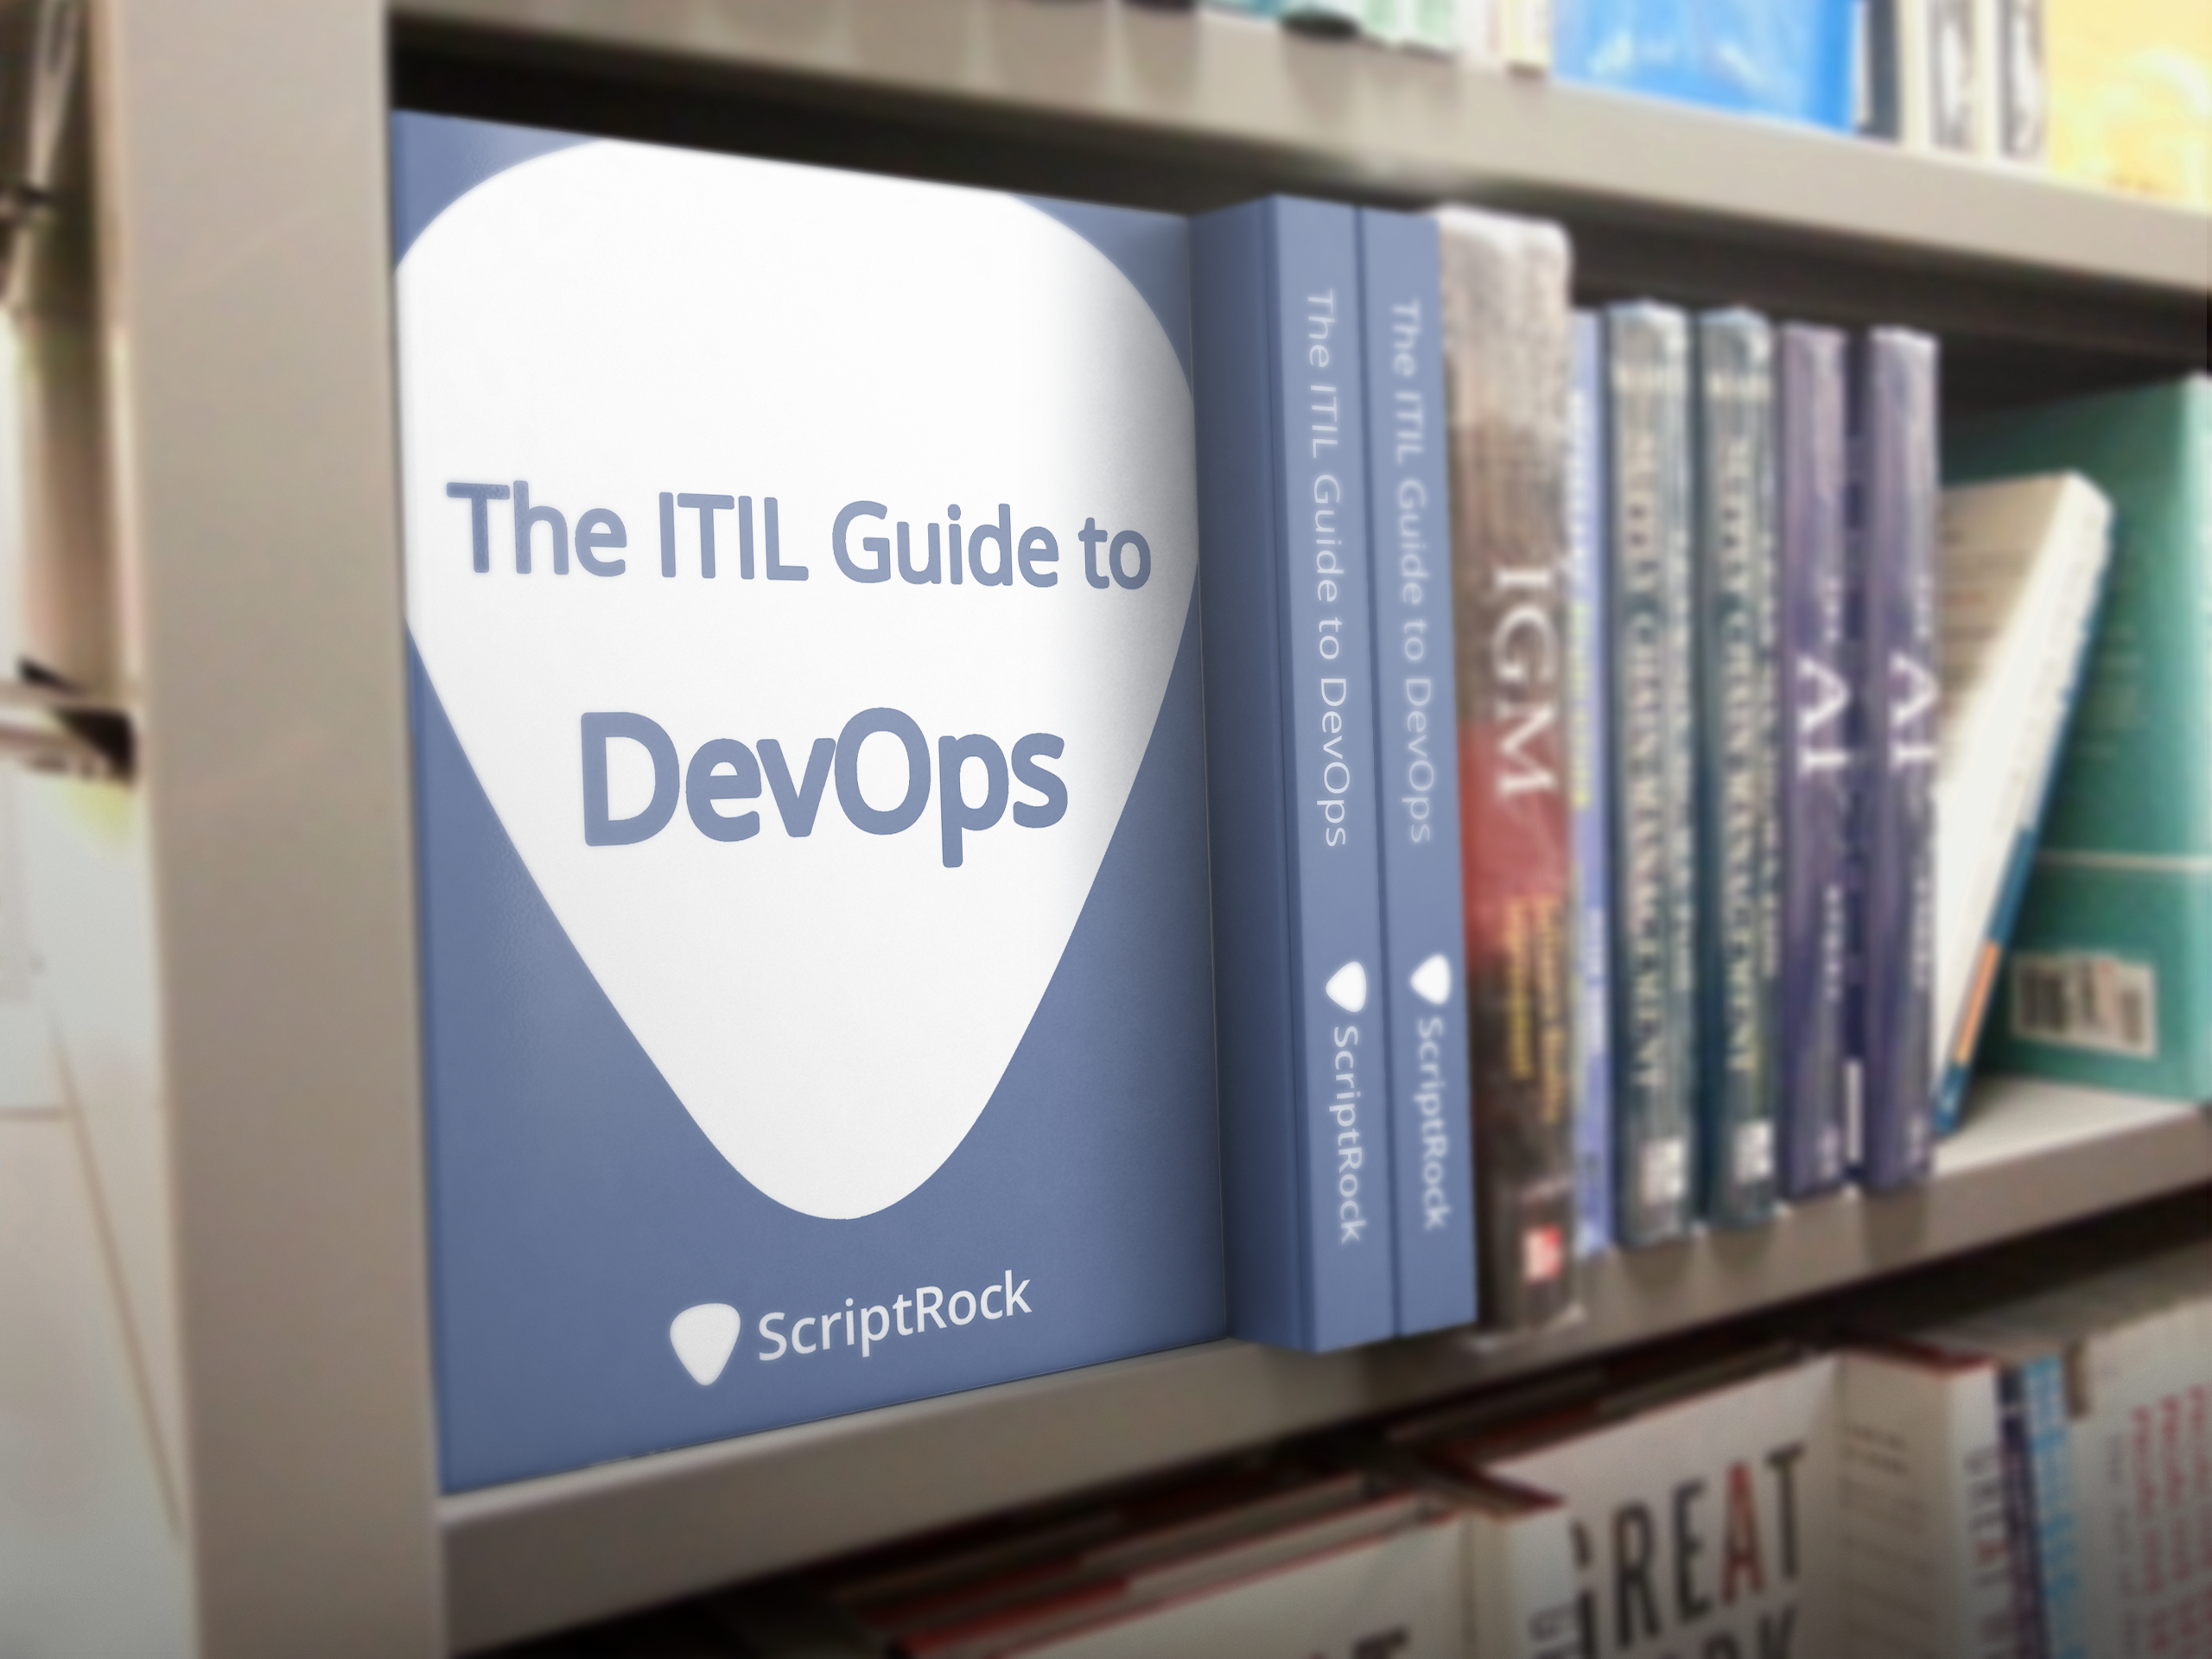 ITIL Guide to DevOps eBook